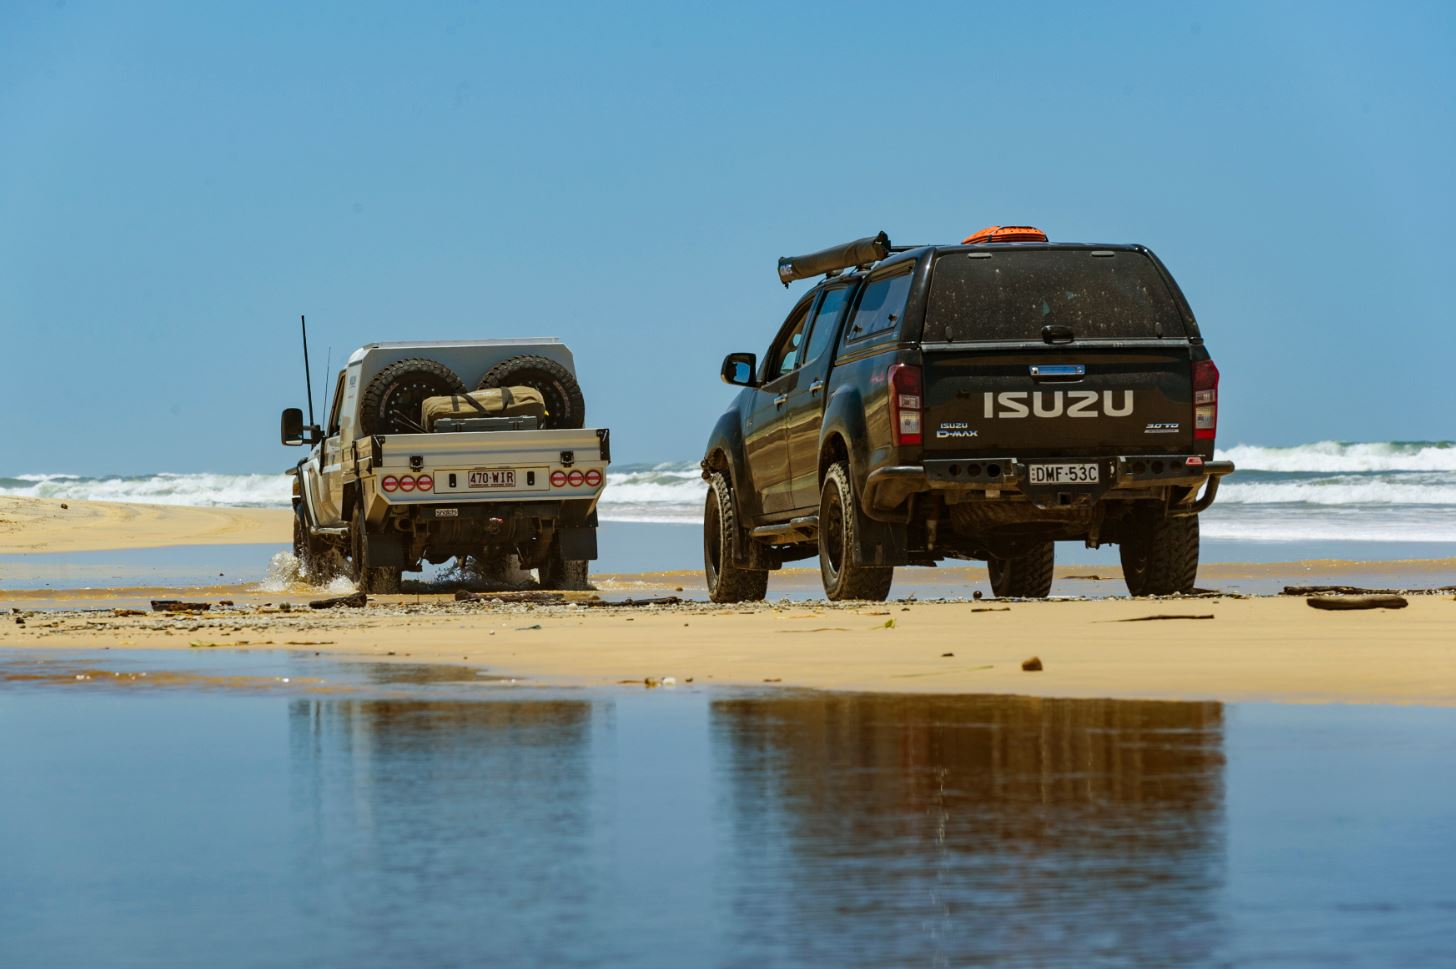 5 Tips for capturing crisp outdoor memories! - image 180108-FraserIsland-Driving-1440 on https://www.4wdsupacentre.com.au/news